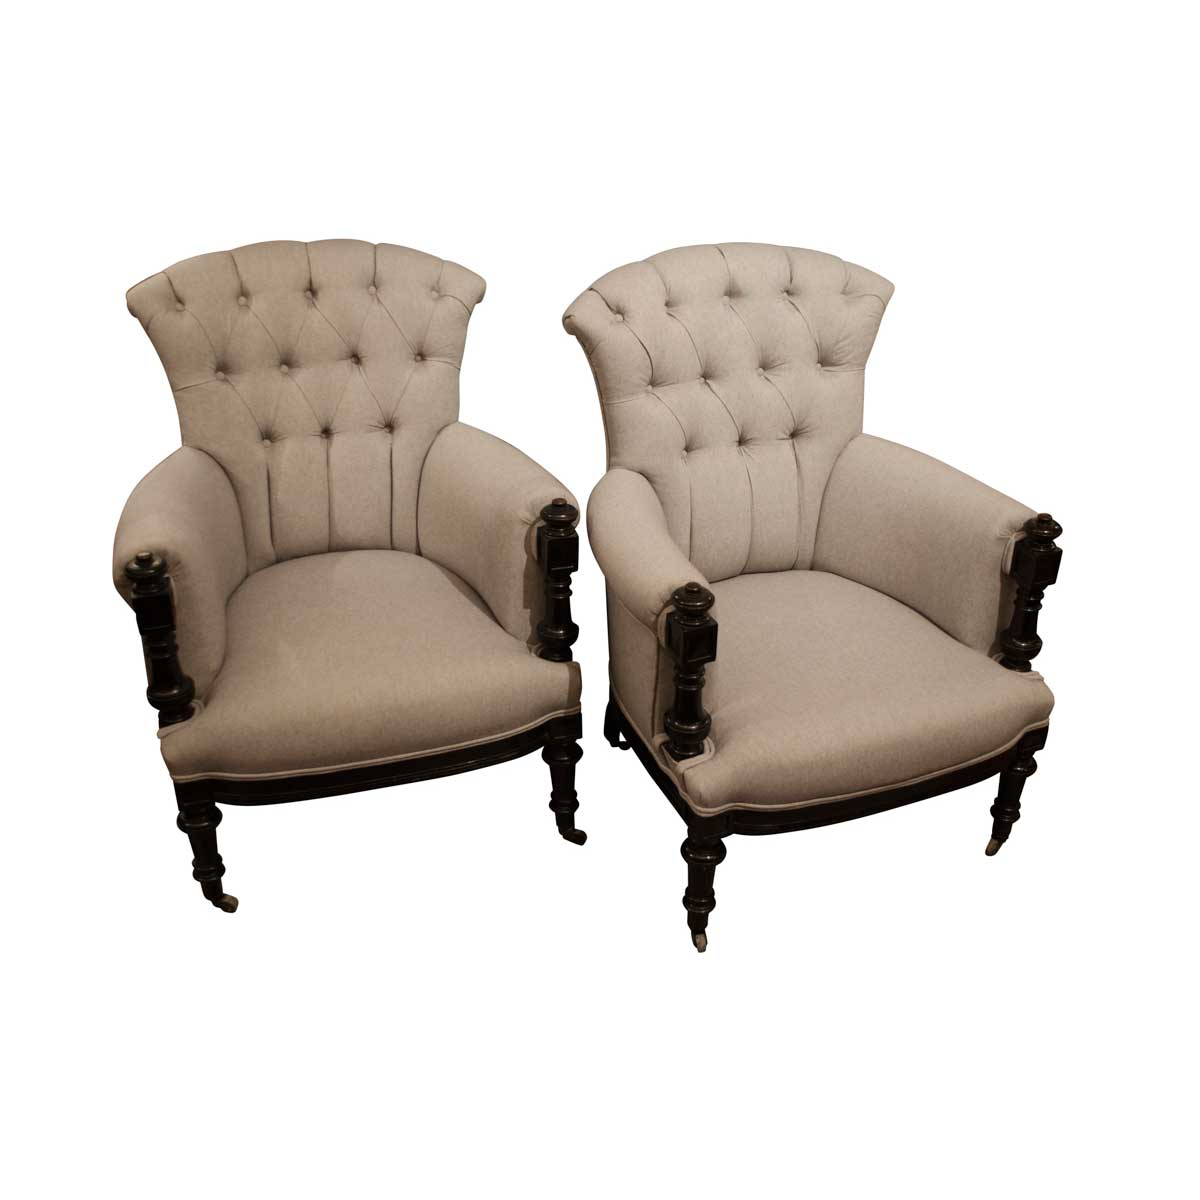 19th Century French Upholstered Armchairs